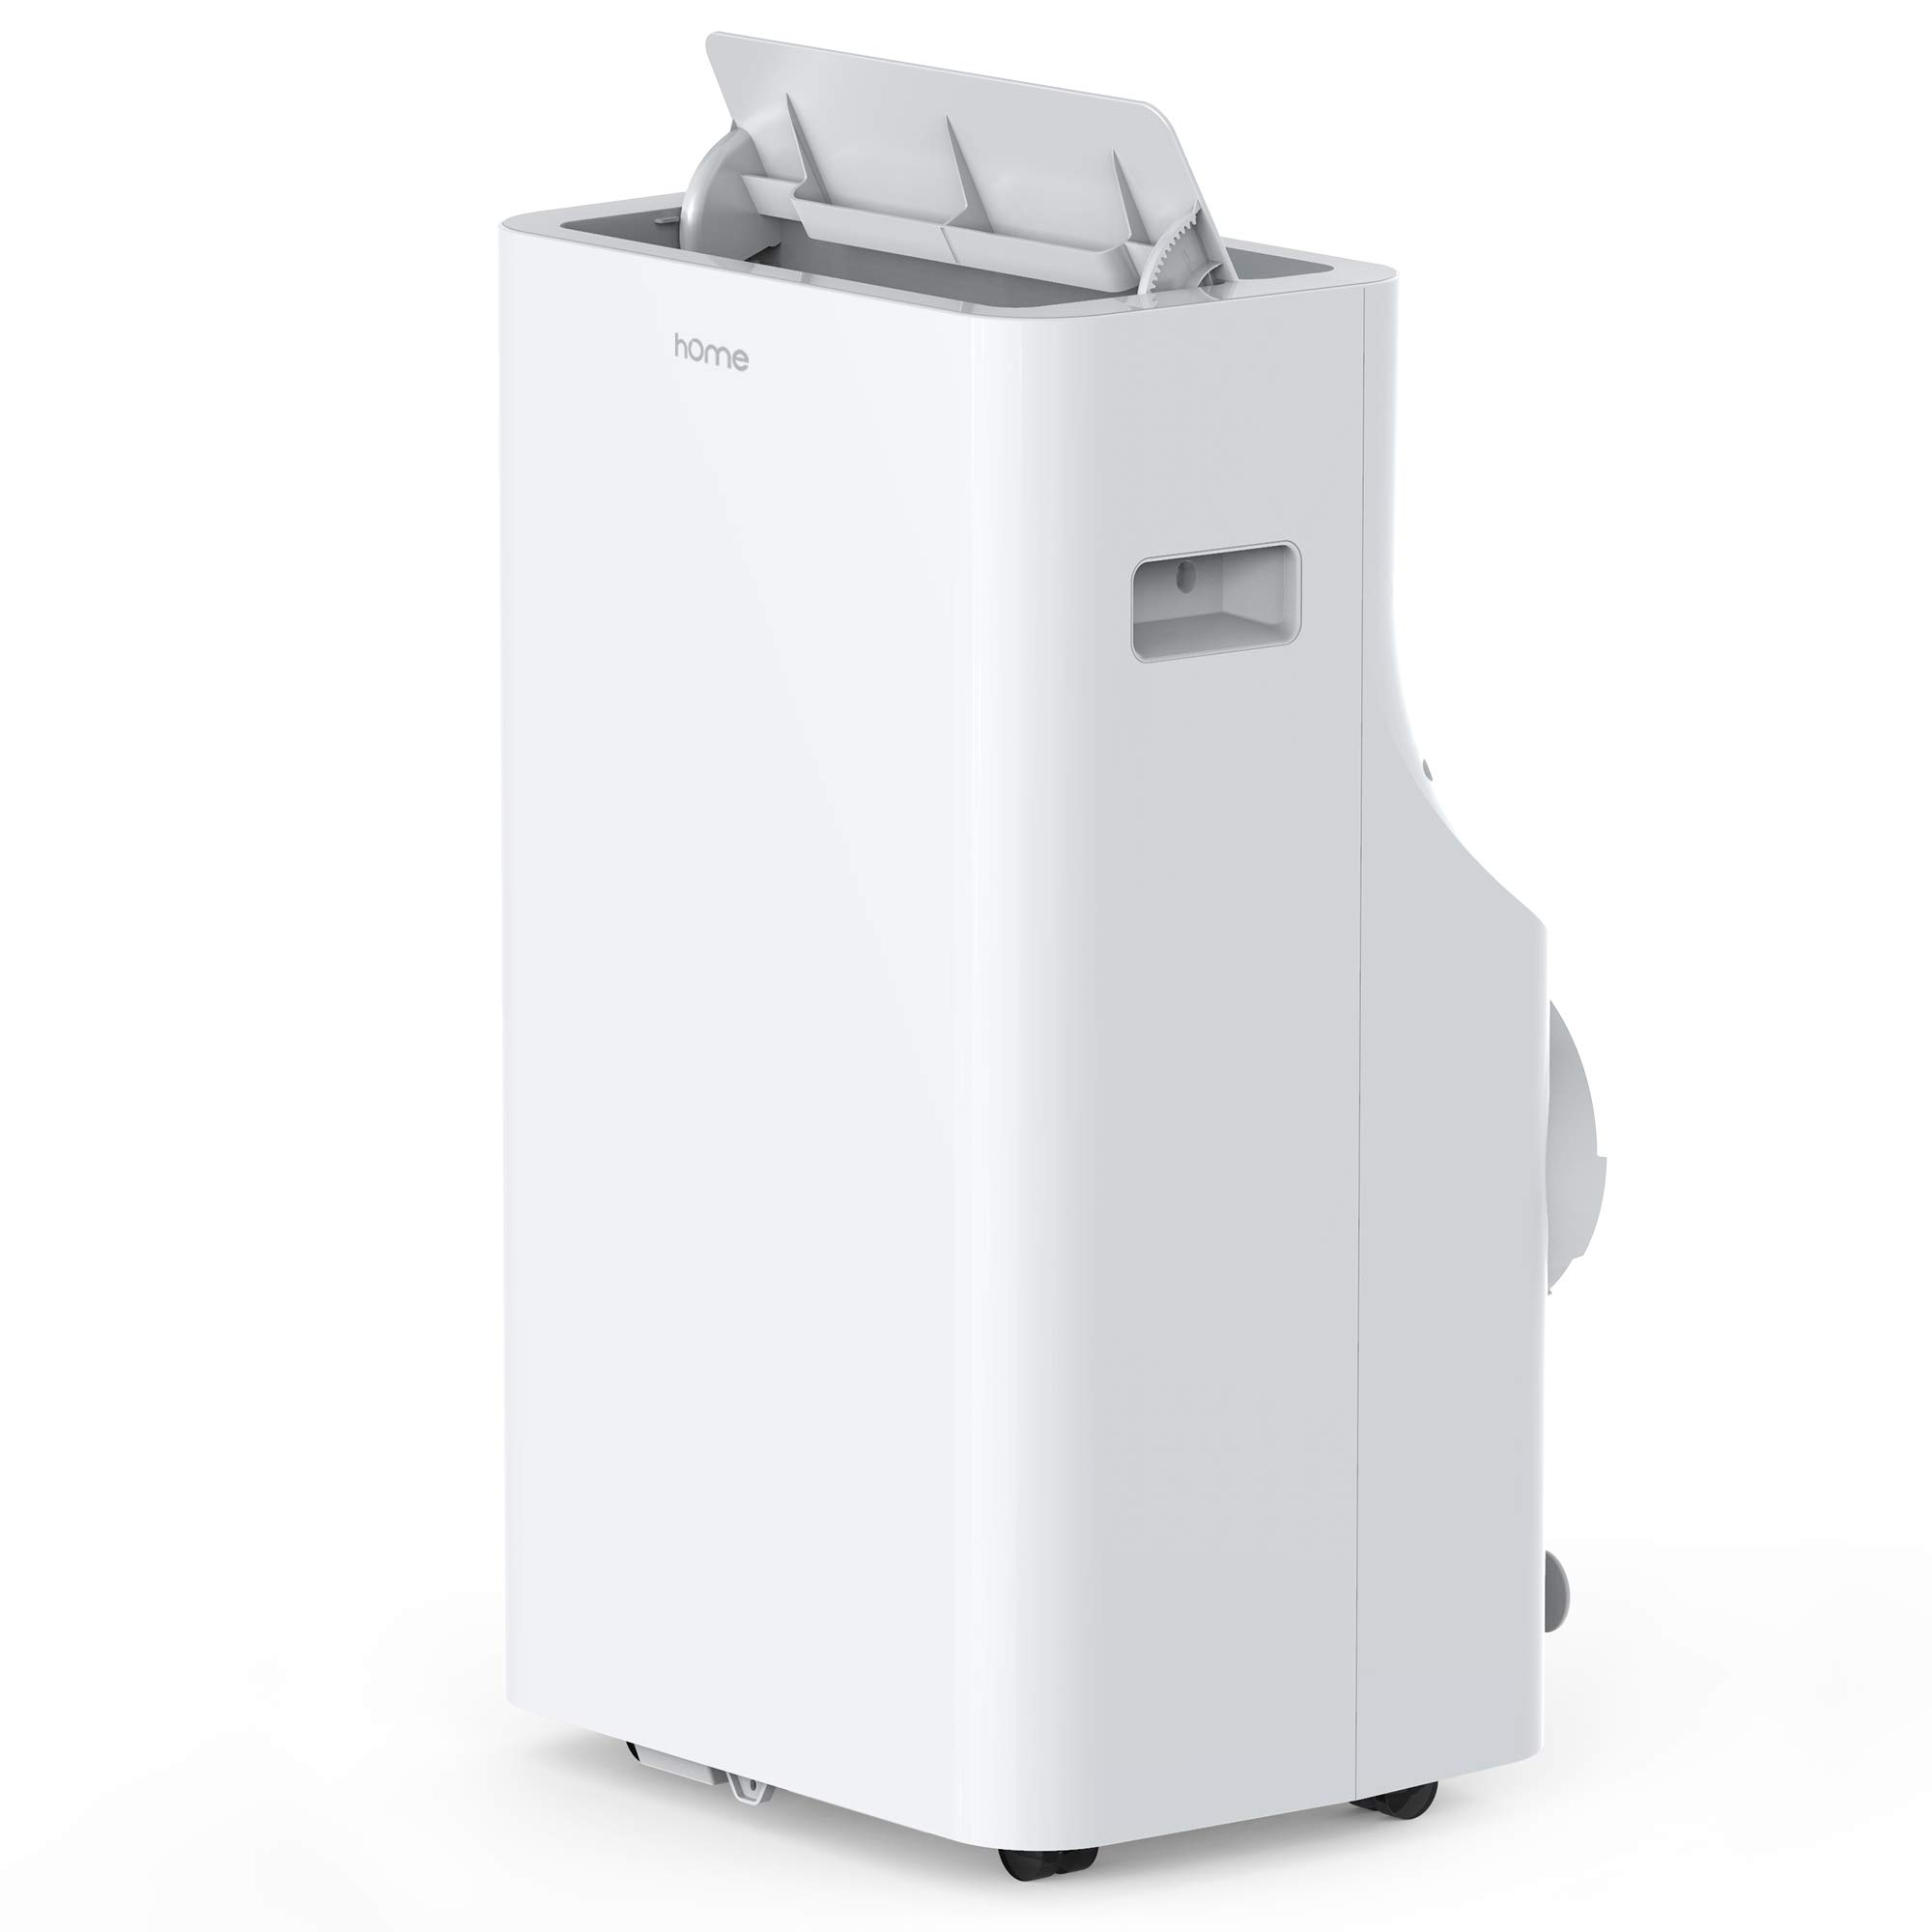 hOmeLabs 12,000 BTU Portable Air Conditioner - Quiet AC Cools Rooms 300-450 Square Feet - Air Conditioning Machine with 100 Pint Dehumidifier Function, Remote Control and Washable Filter